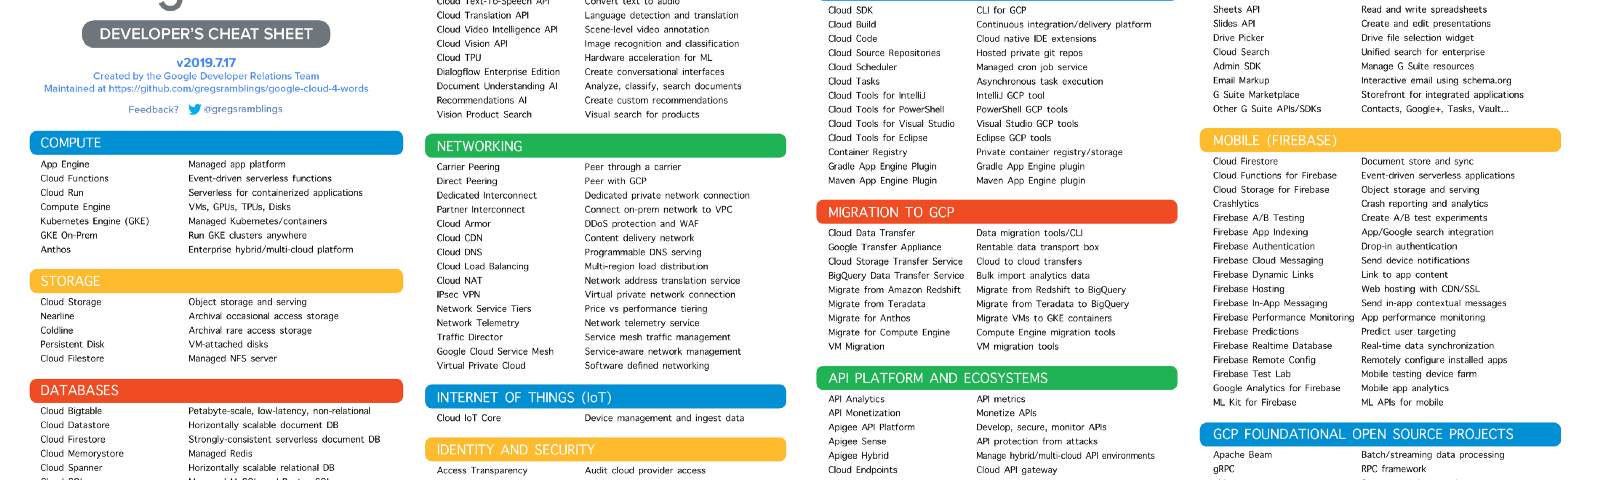 List of Google Cloud products with short descriptions of each